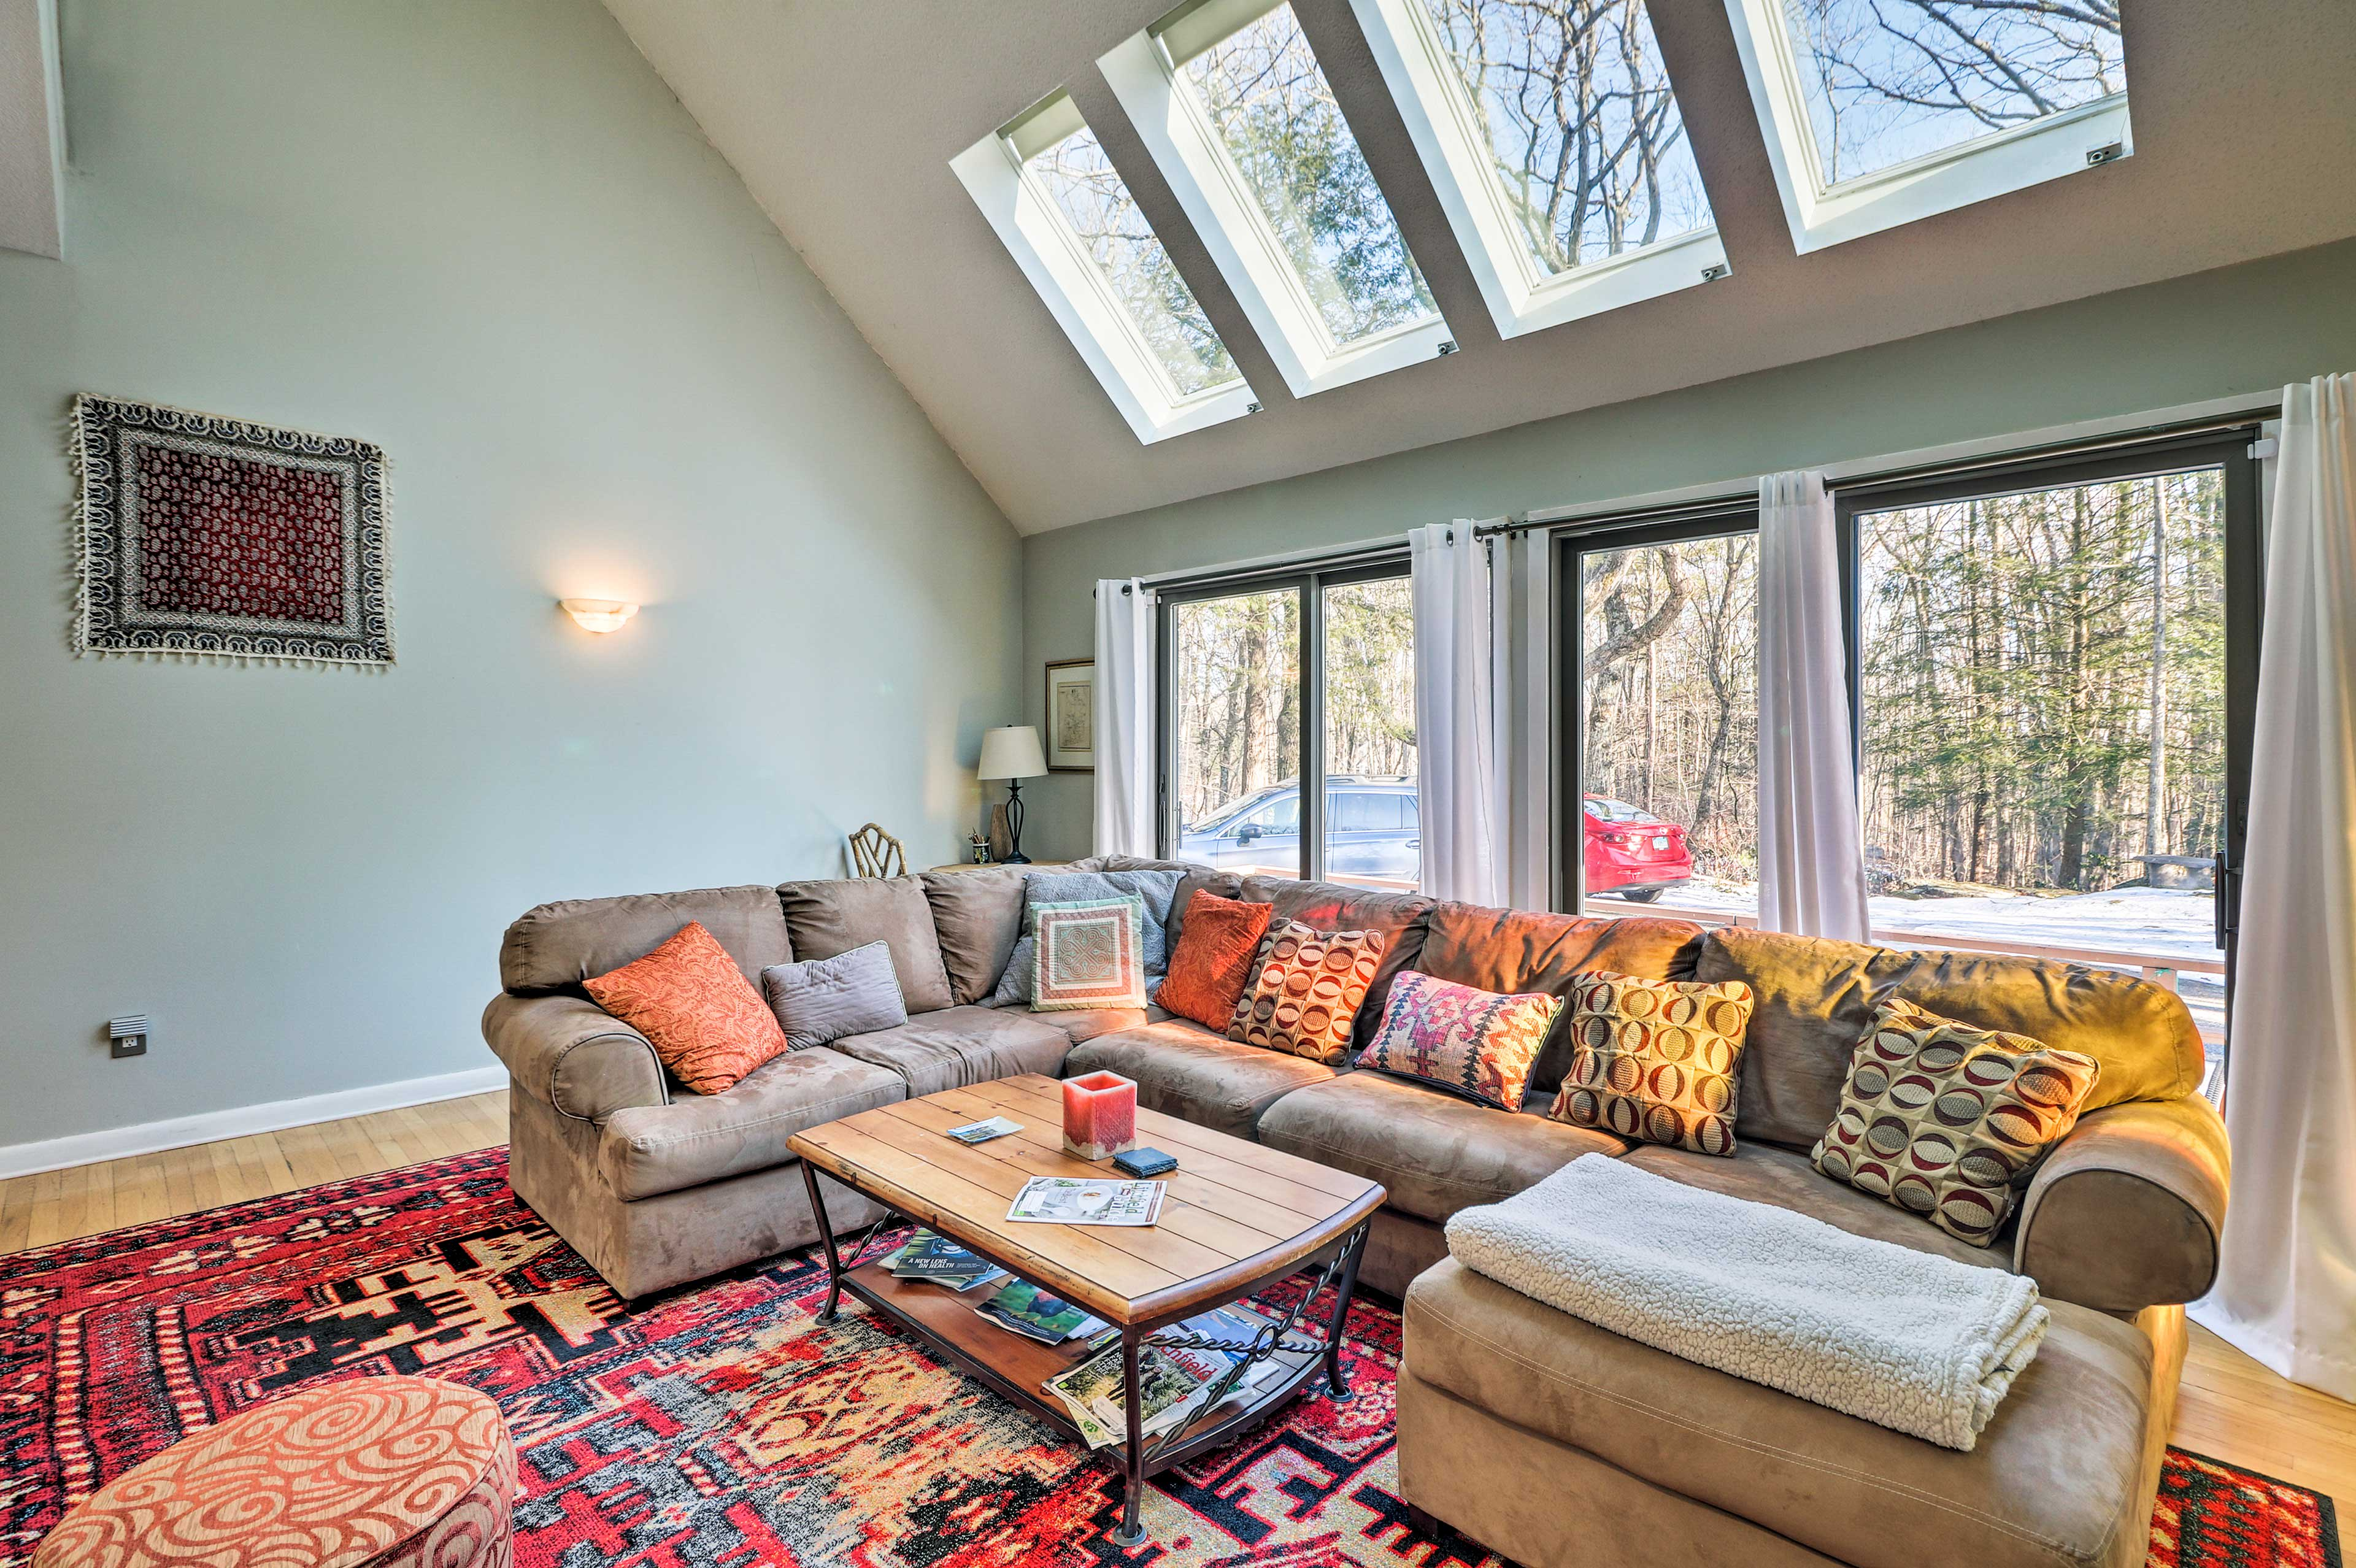 Natural light fills the space through the large windows and skylights.